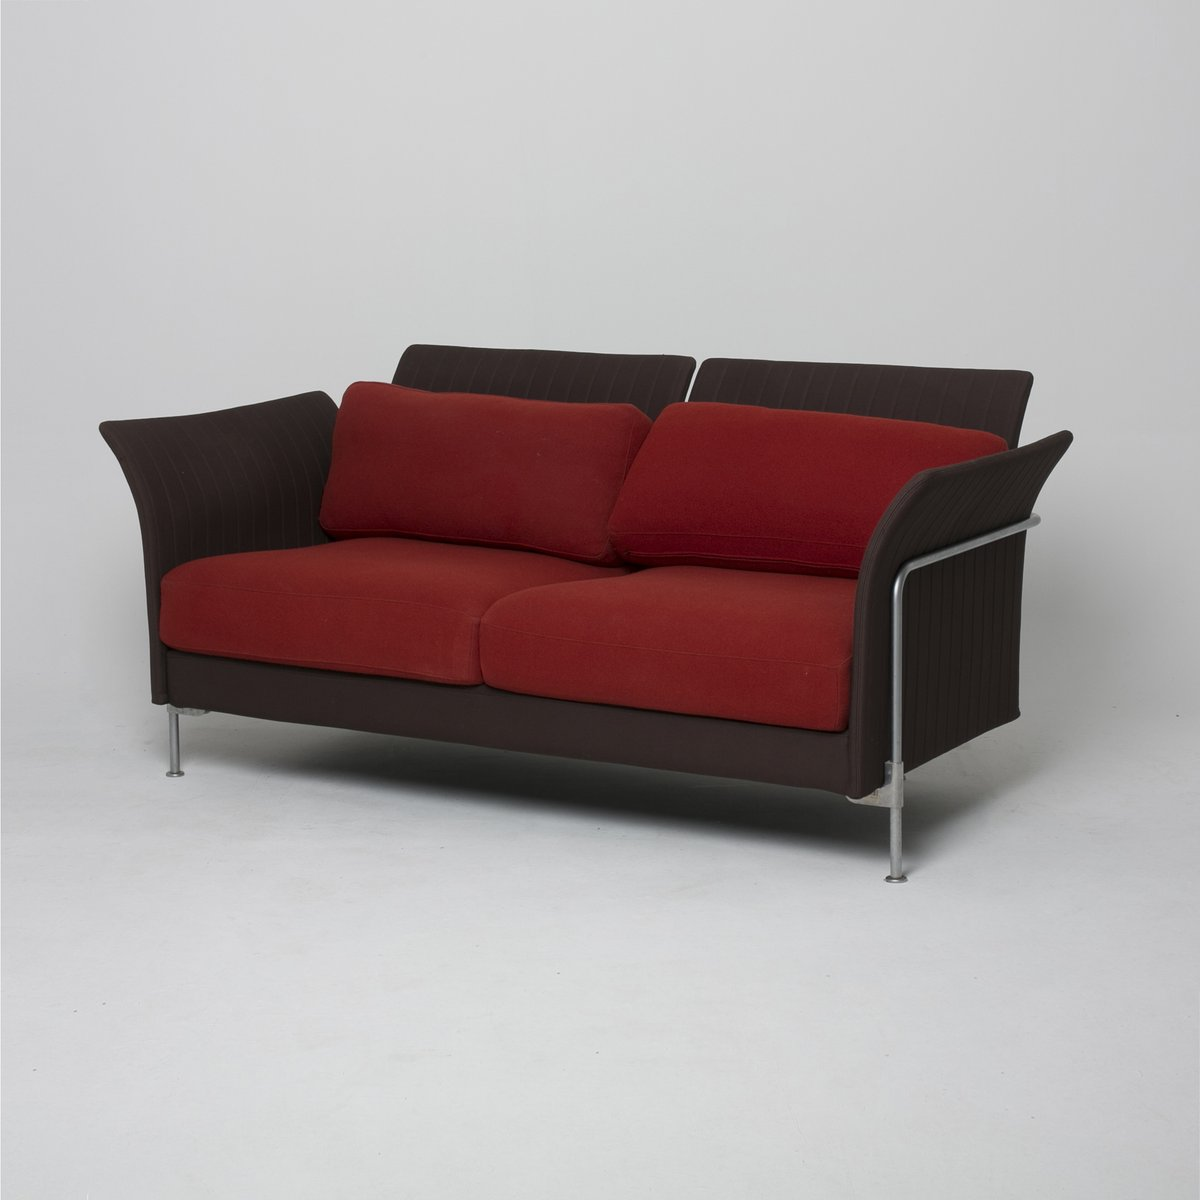 Canape Sofa Canapé Sofa By Ronan And Erwan Bouroullec For Vitra For Sale